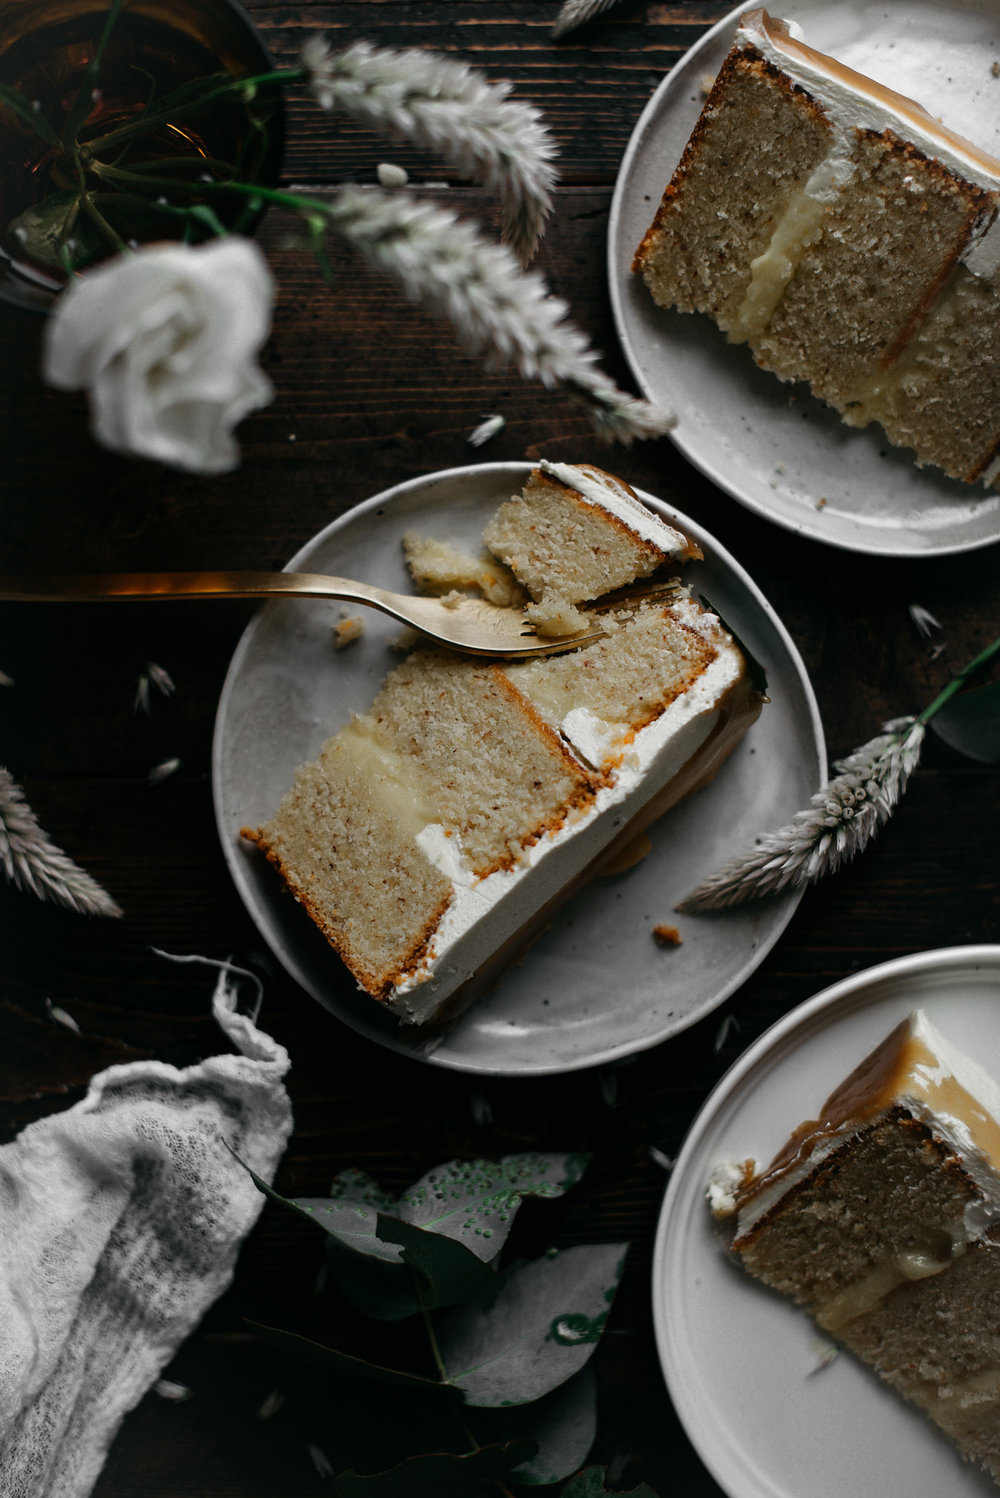 Italian-Orange-Blossom-and-Almond-Cake-with-Orange-Curd-Mascarpone-Swiss-Meringue-Buttercream-and-Fleur-d'Oranger-Caramel-14.jpg